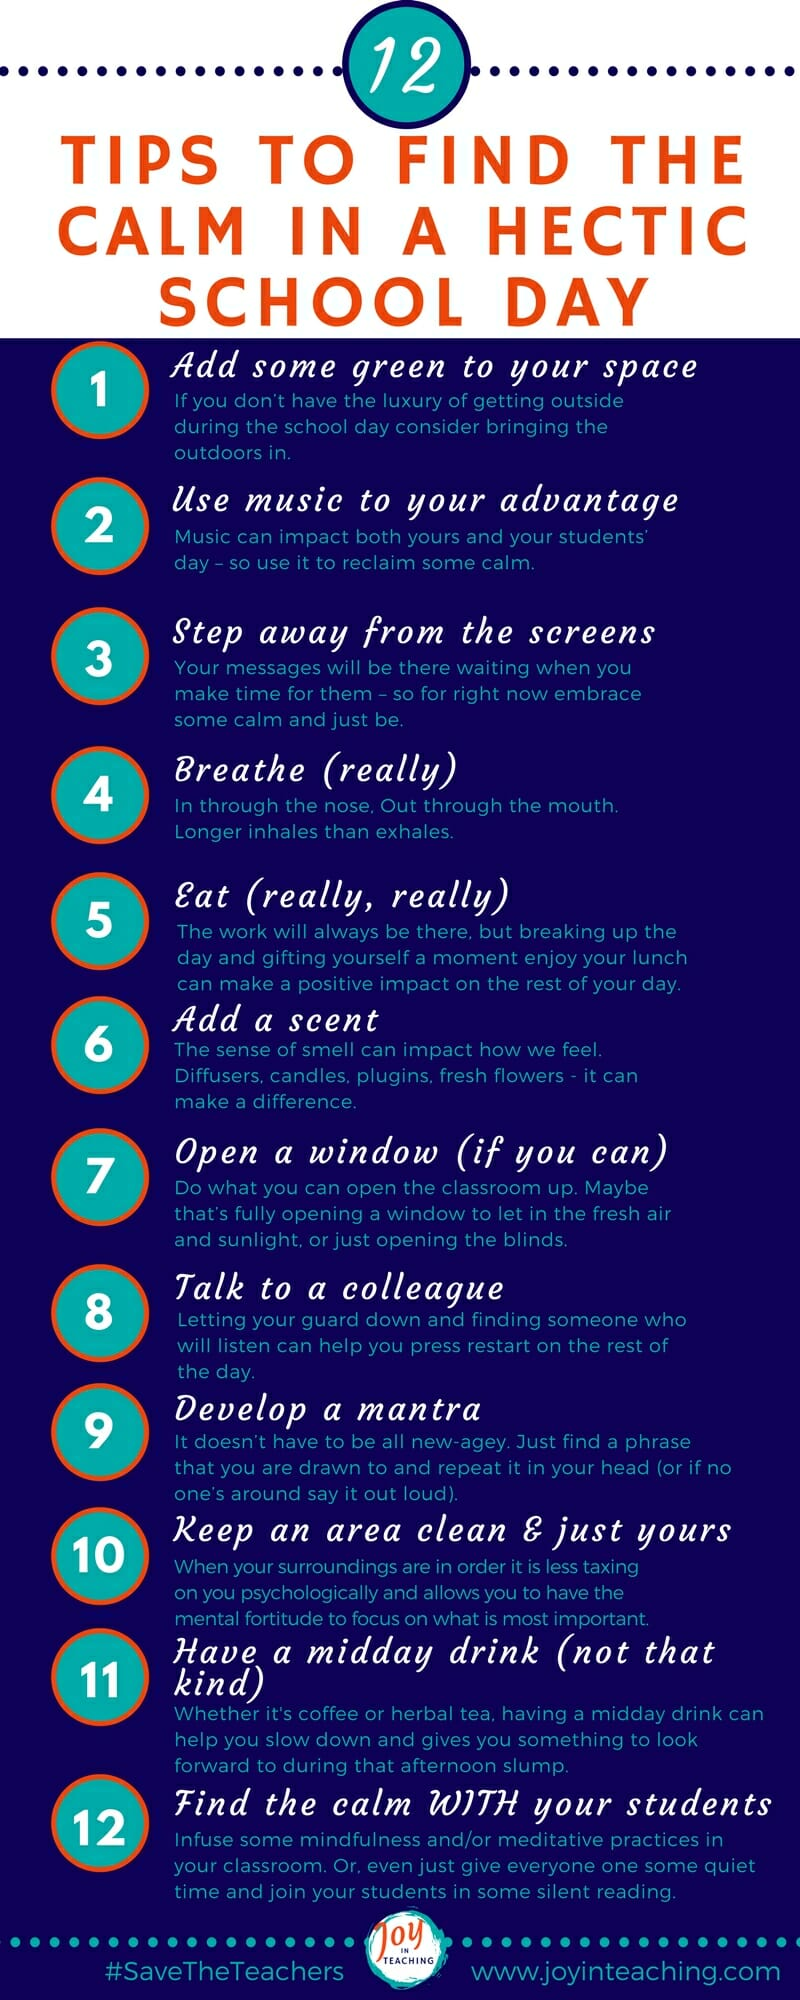 12 Tips to Find the Calm in A Hectic School Day - Infographic